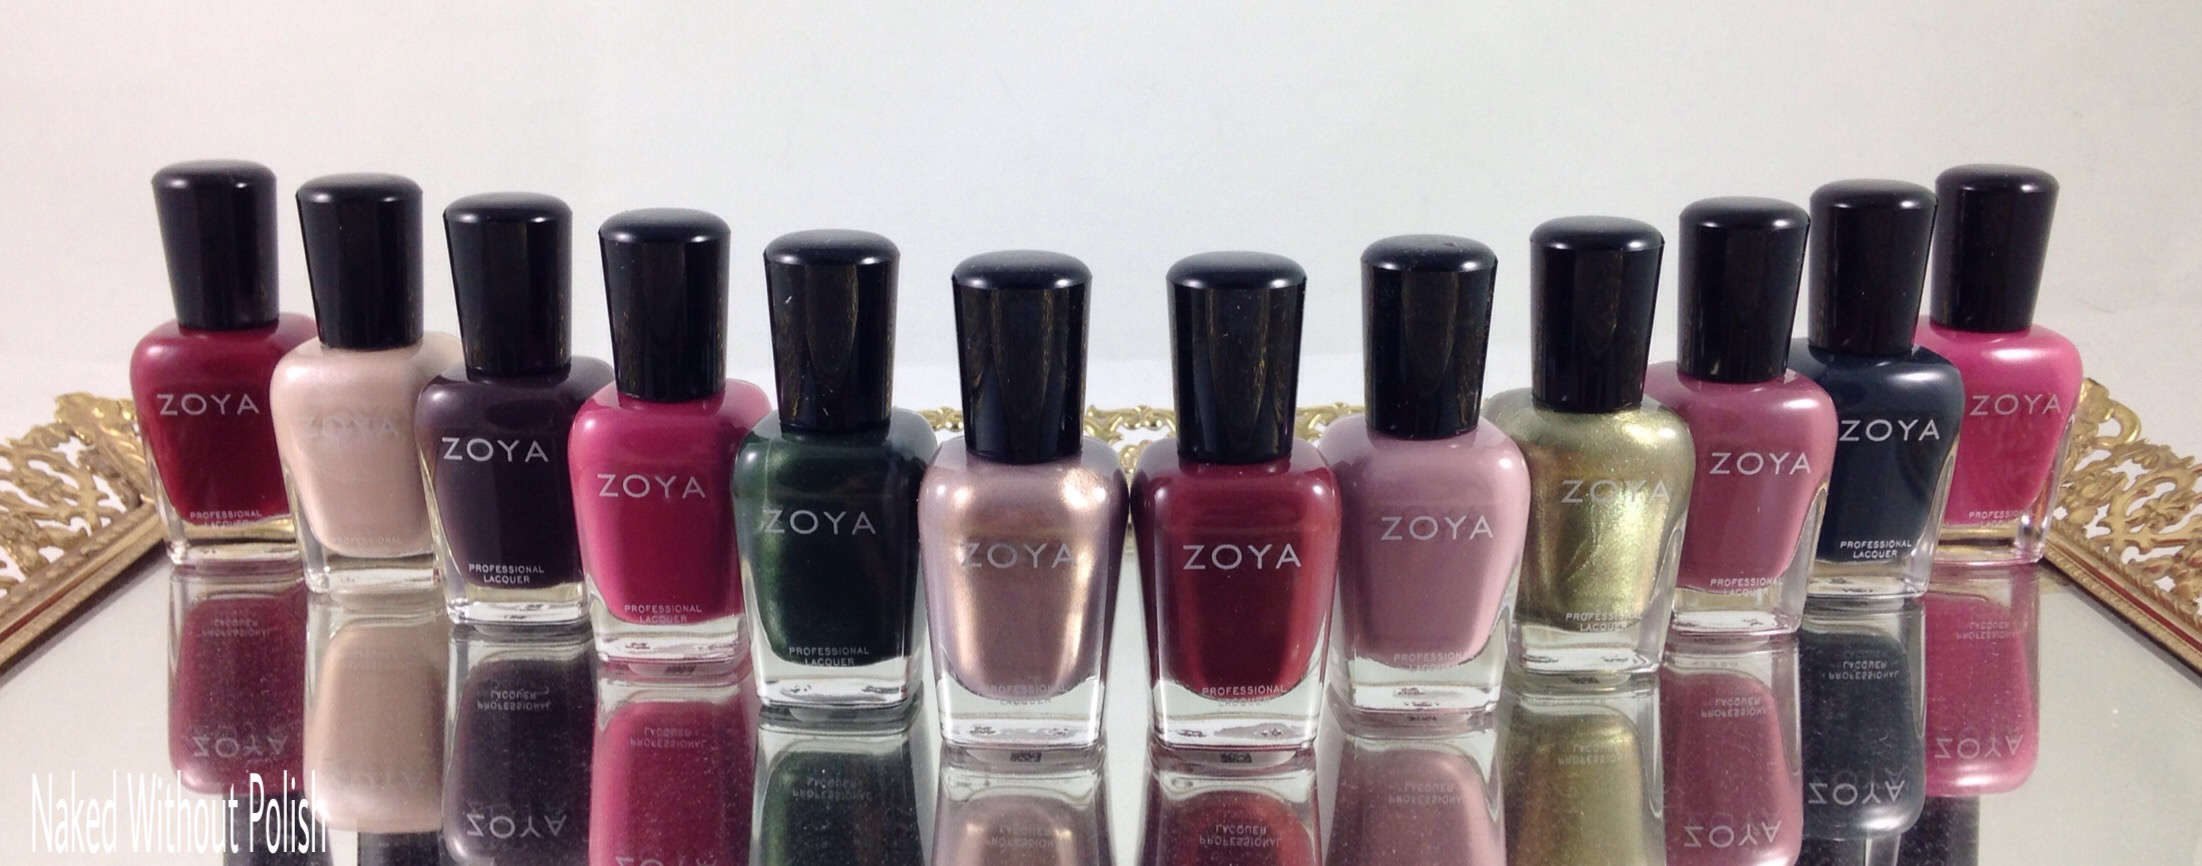 Zoya-Sophisticates-Collection-1